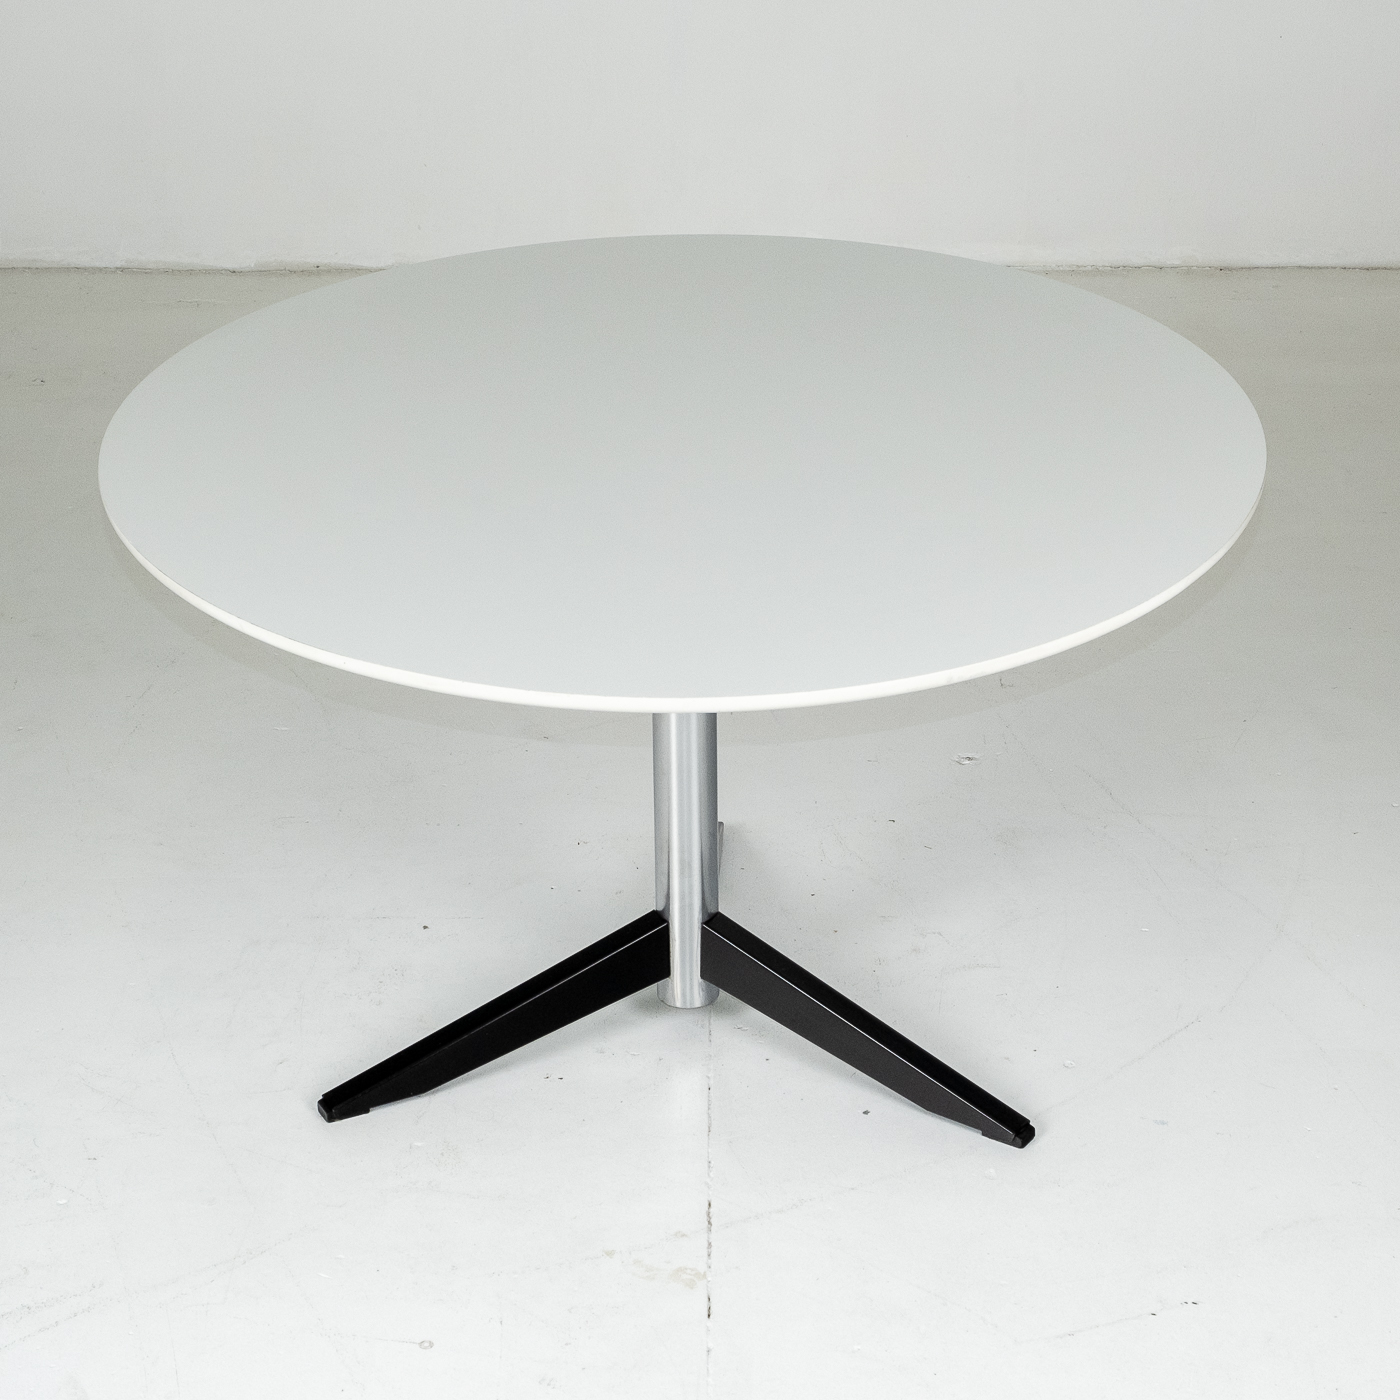 Model Te06 Dining Table By Martin Visser For 't Spectrum, 1960s, The Netherlands25